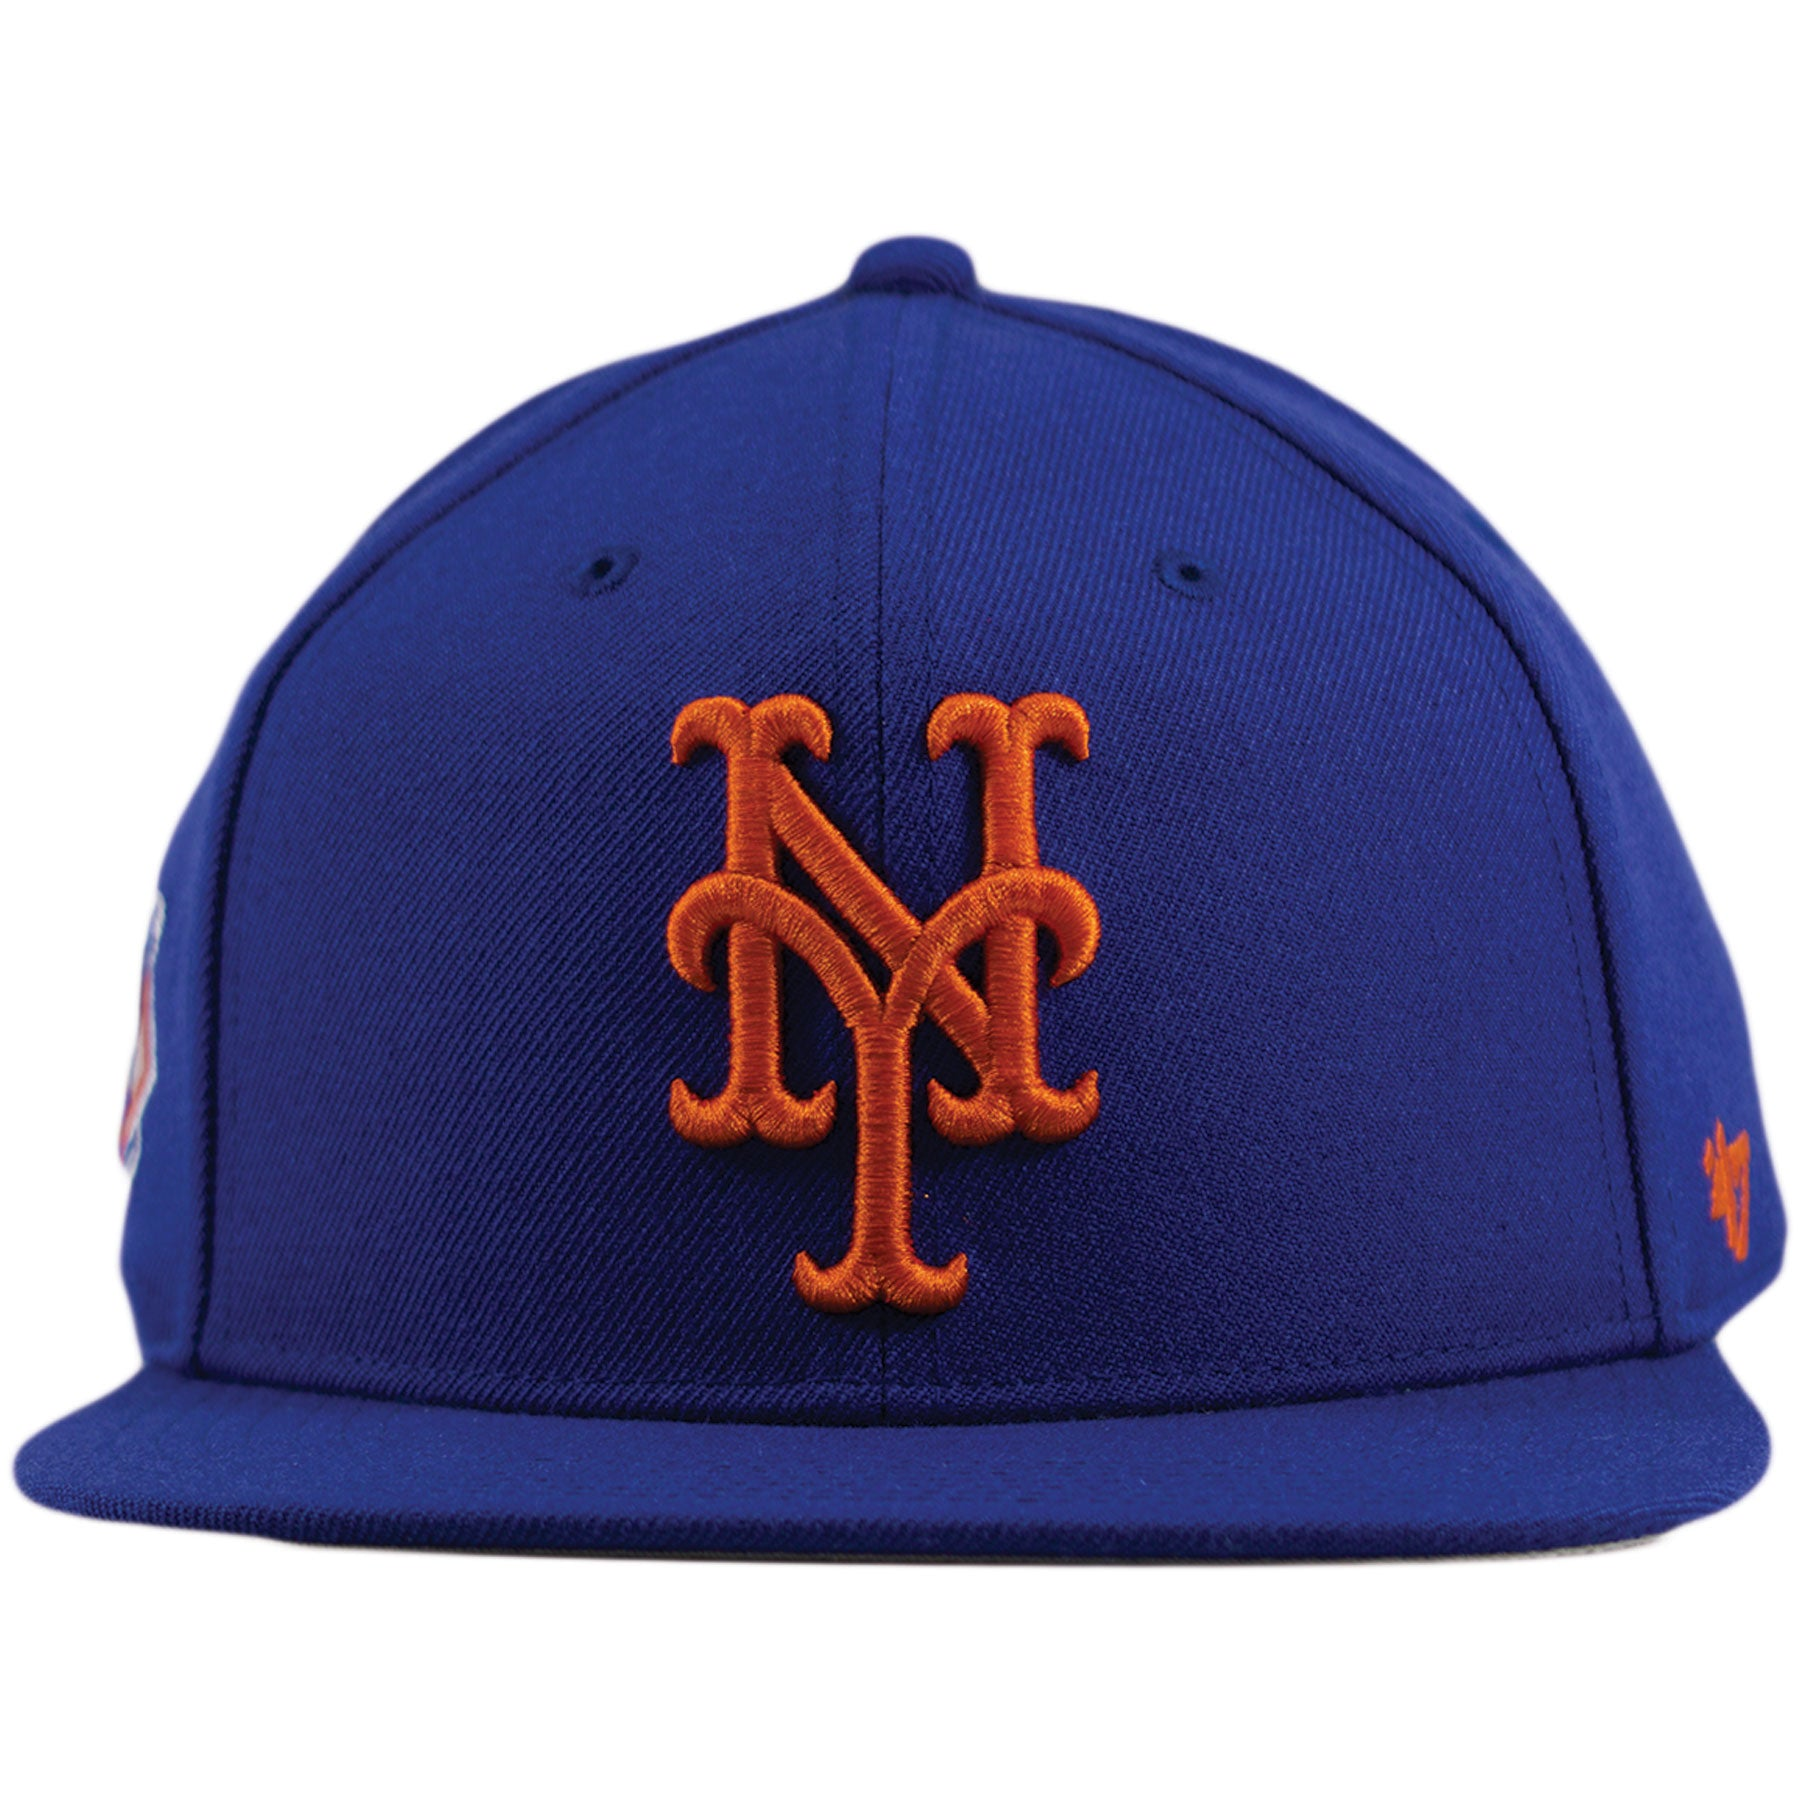 22f128d837185d New York Mets Royal Blue Adjustable Snapback Hat – Cap Swag